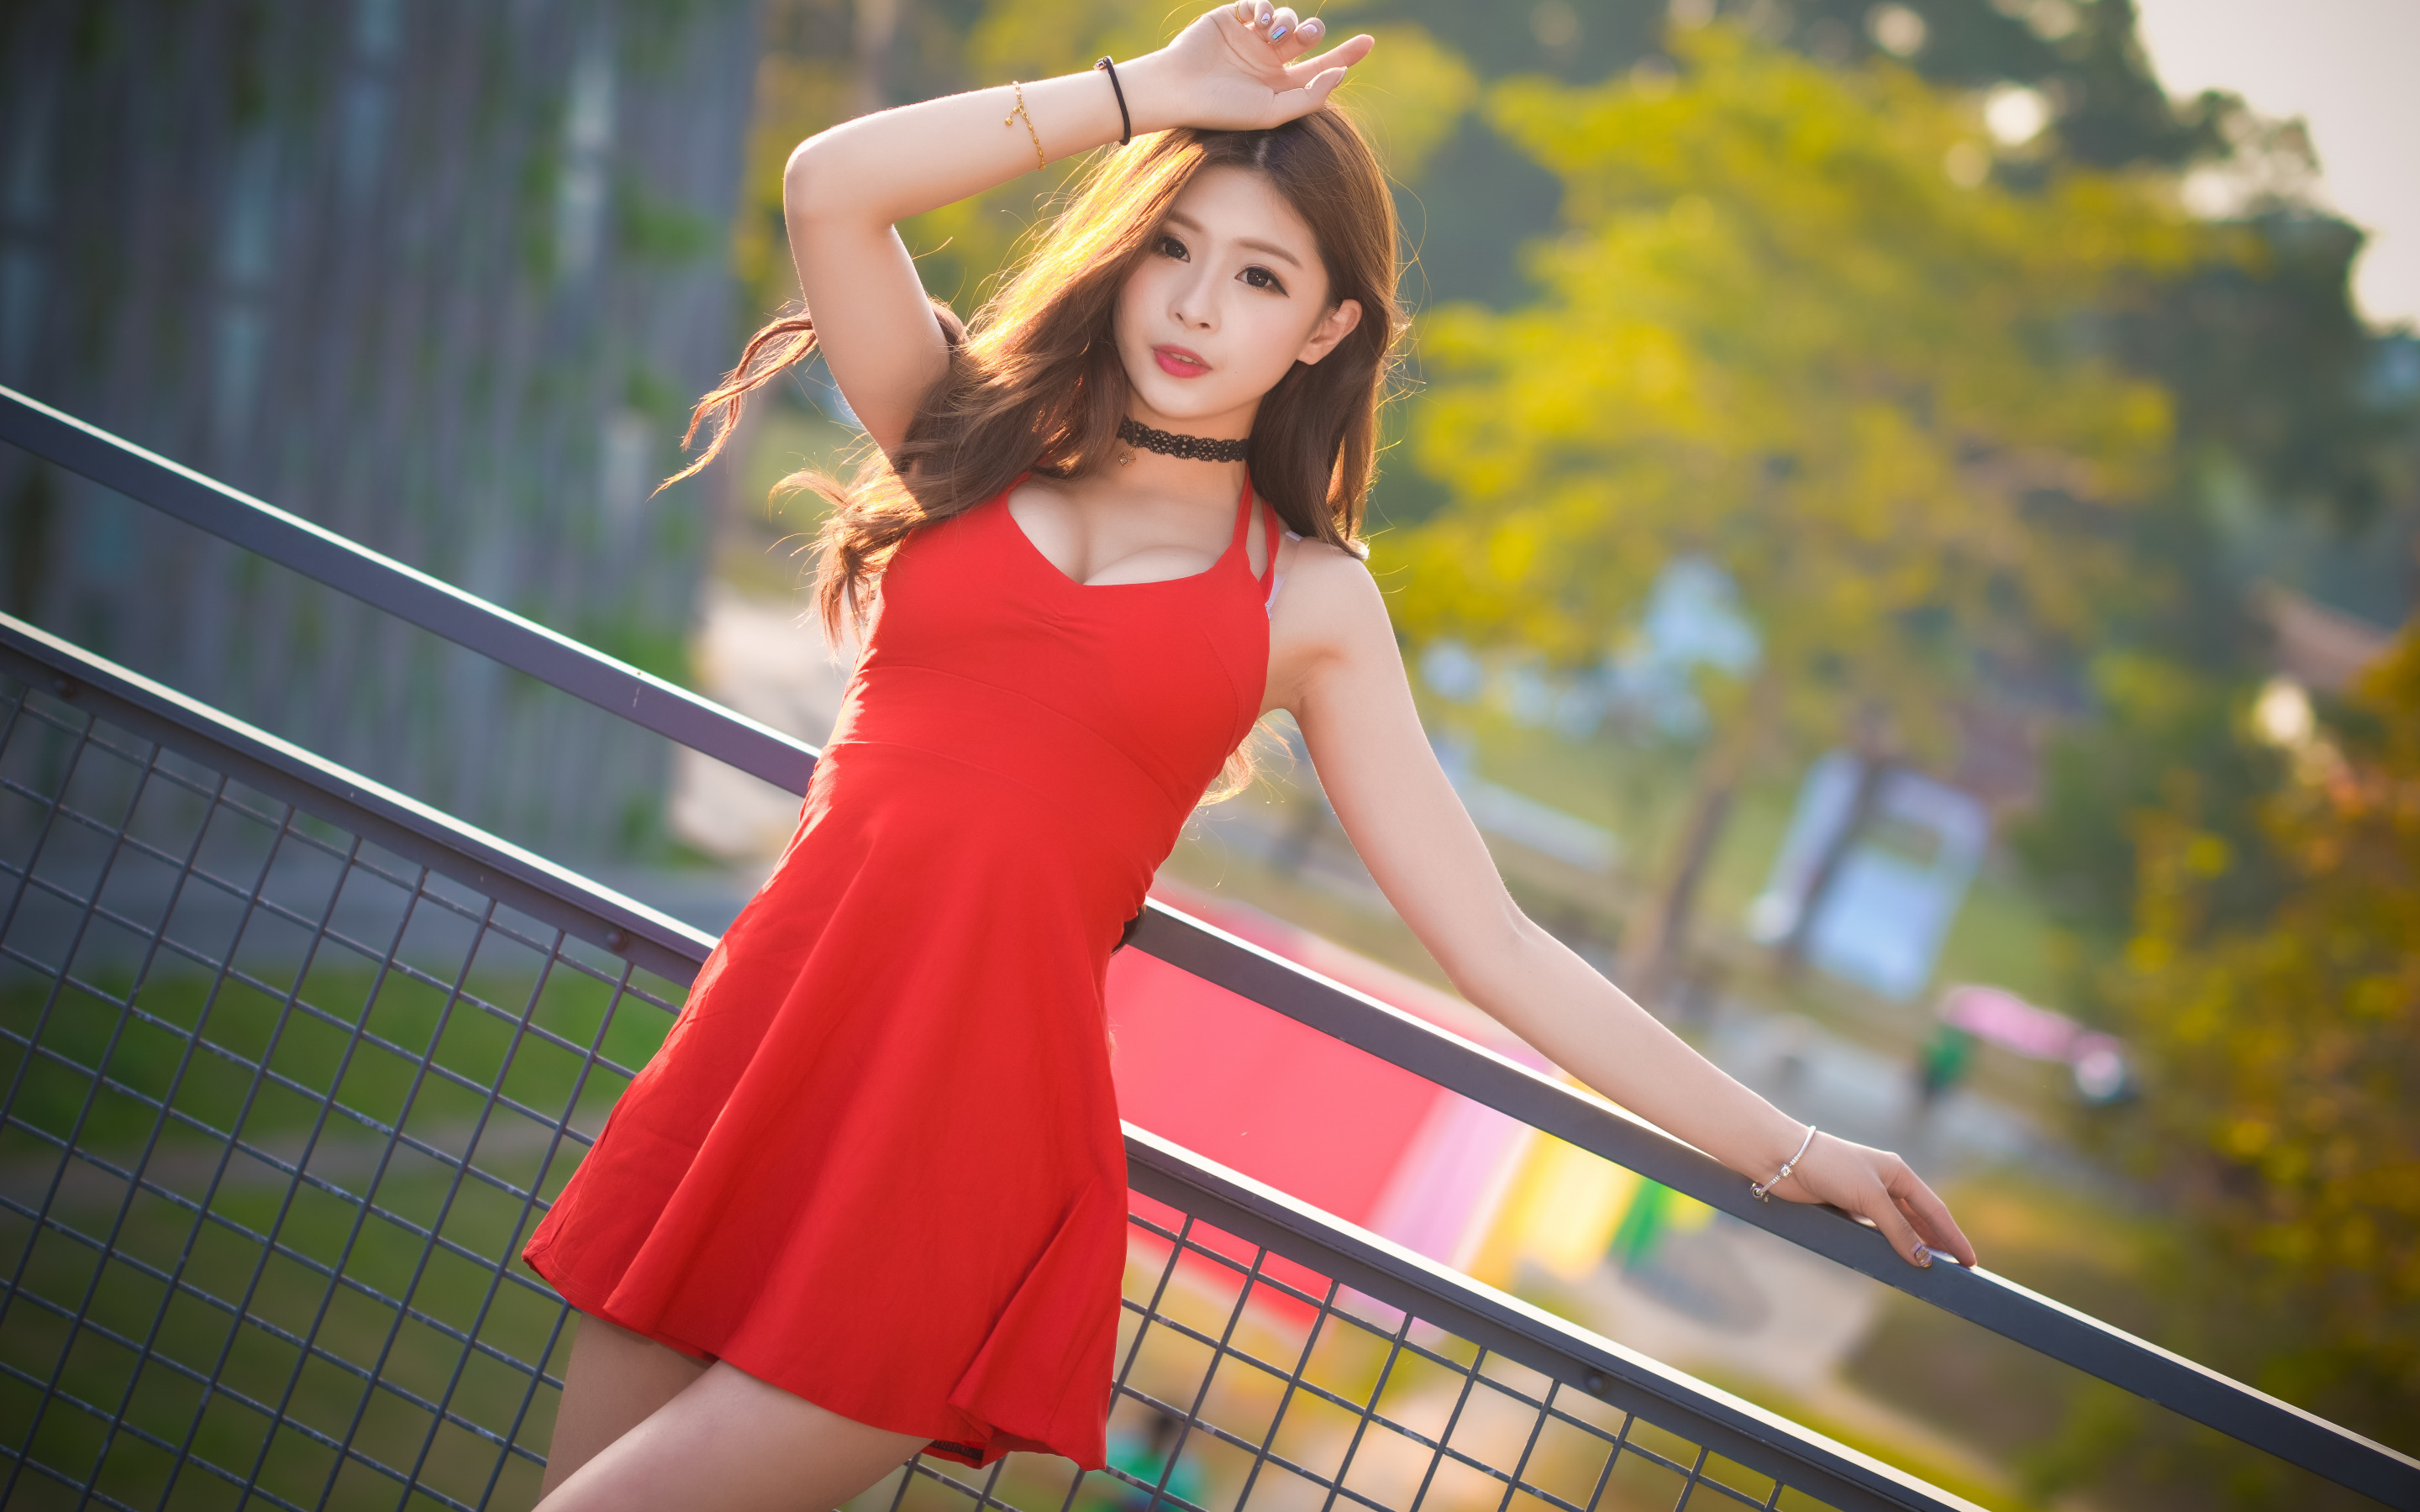 Image: Girl, Asian, hair, dress, red, fence, trees, blurring